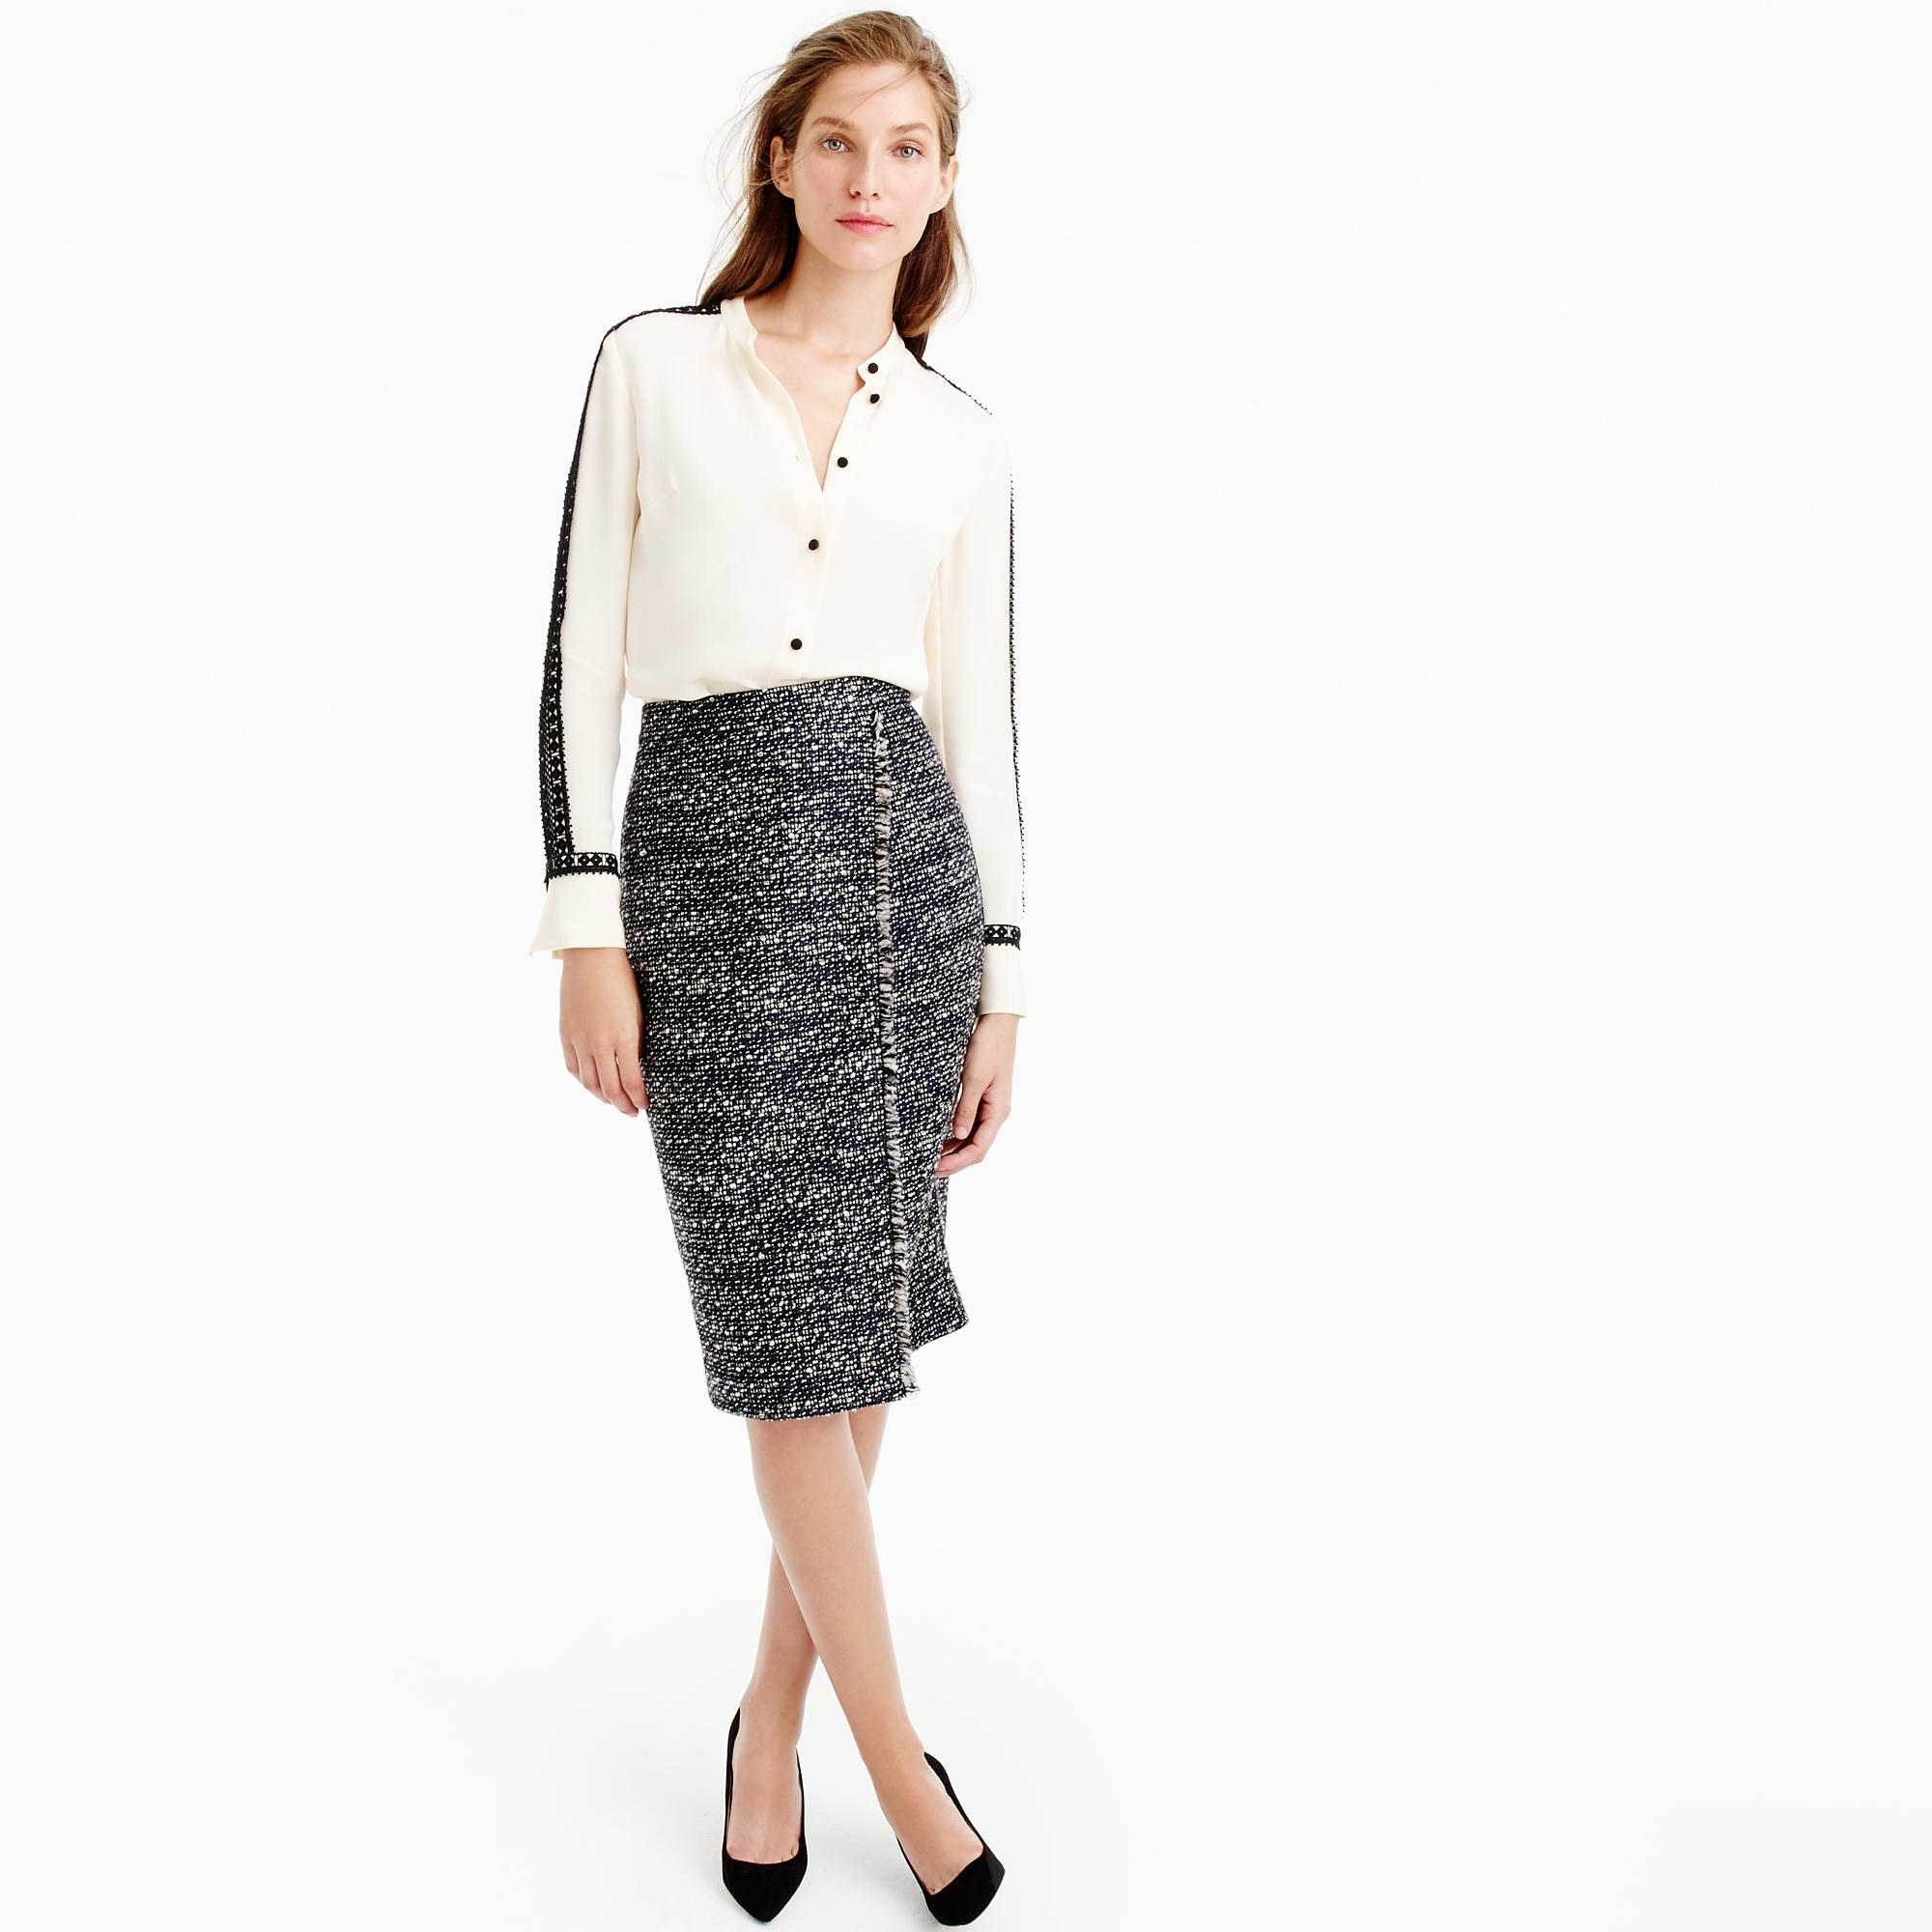 a1ac6d1dbb 10 Fresh Ways to Wear a Pencil Skirt